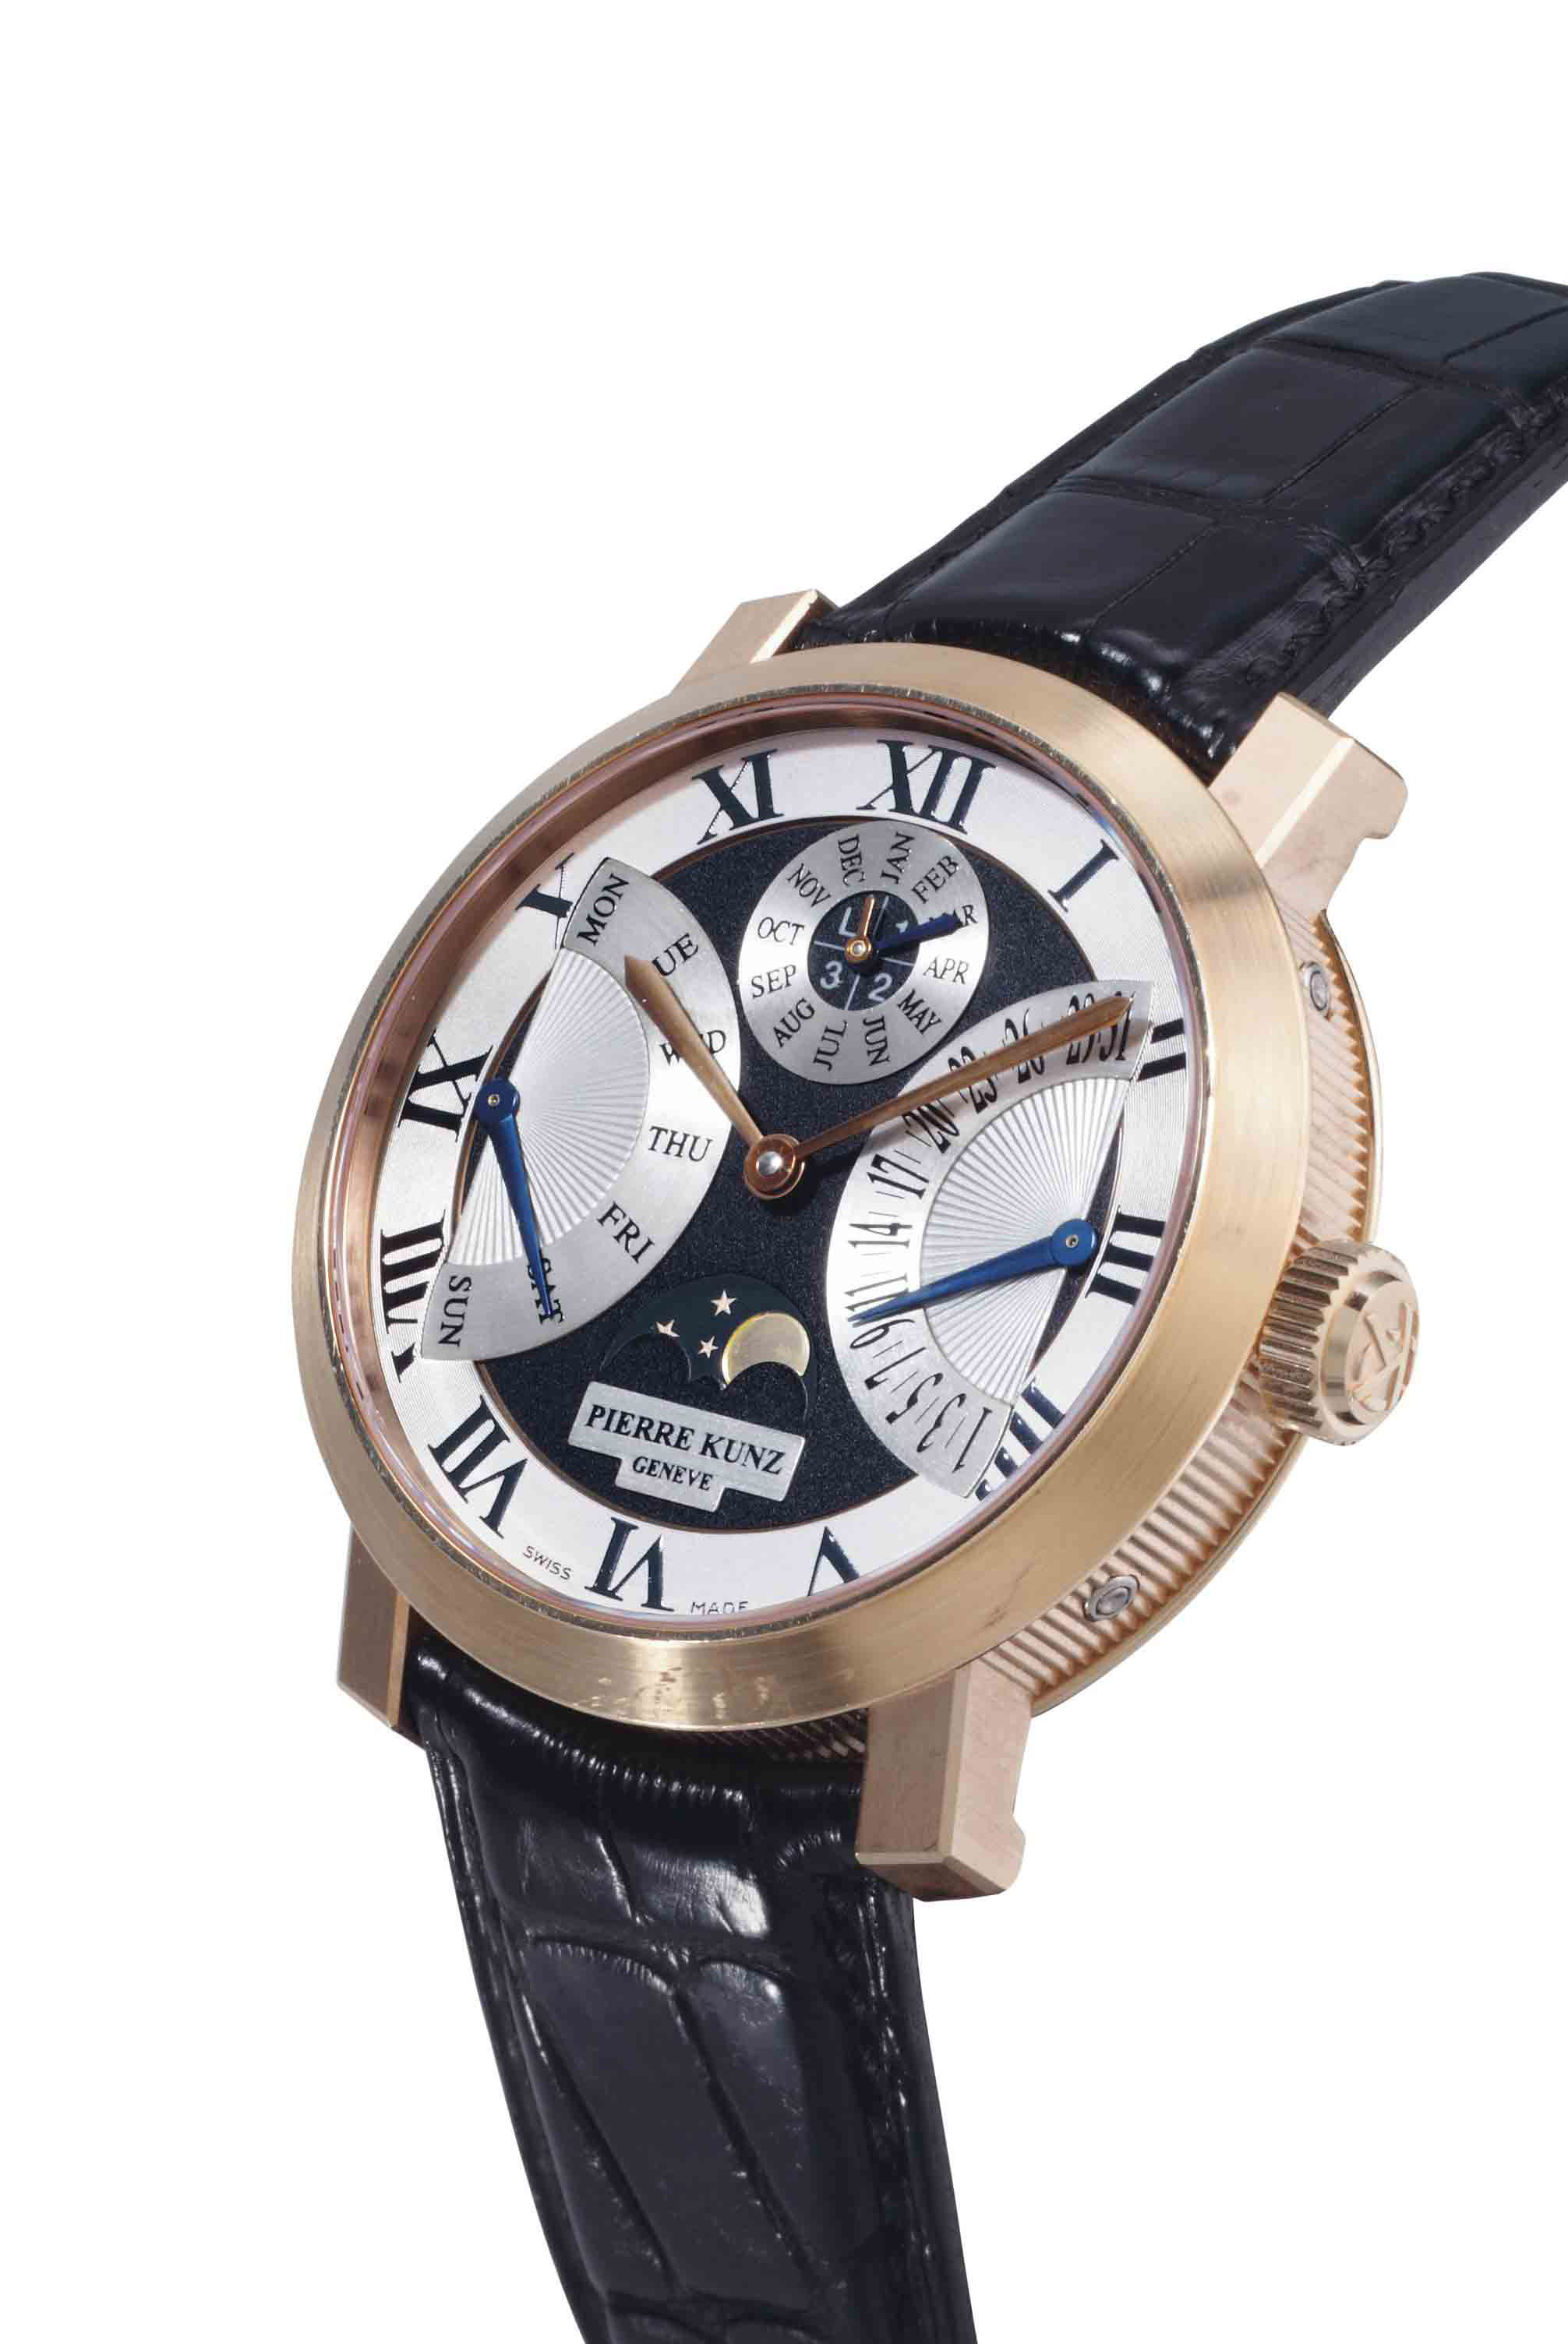 Pierre Kunz. A Fine 18k Pink Gold Automatic Perpetual Calendar Wristwatch With Retrograde Day And Date And Moon Phases